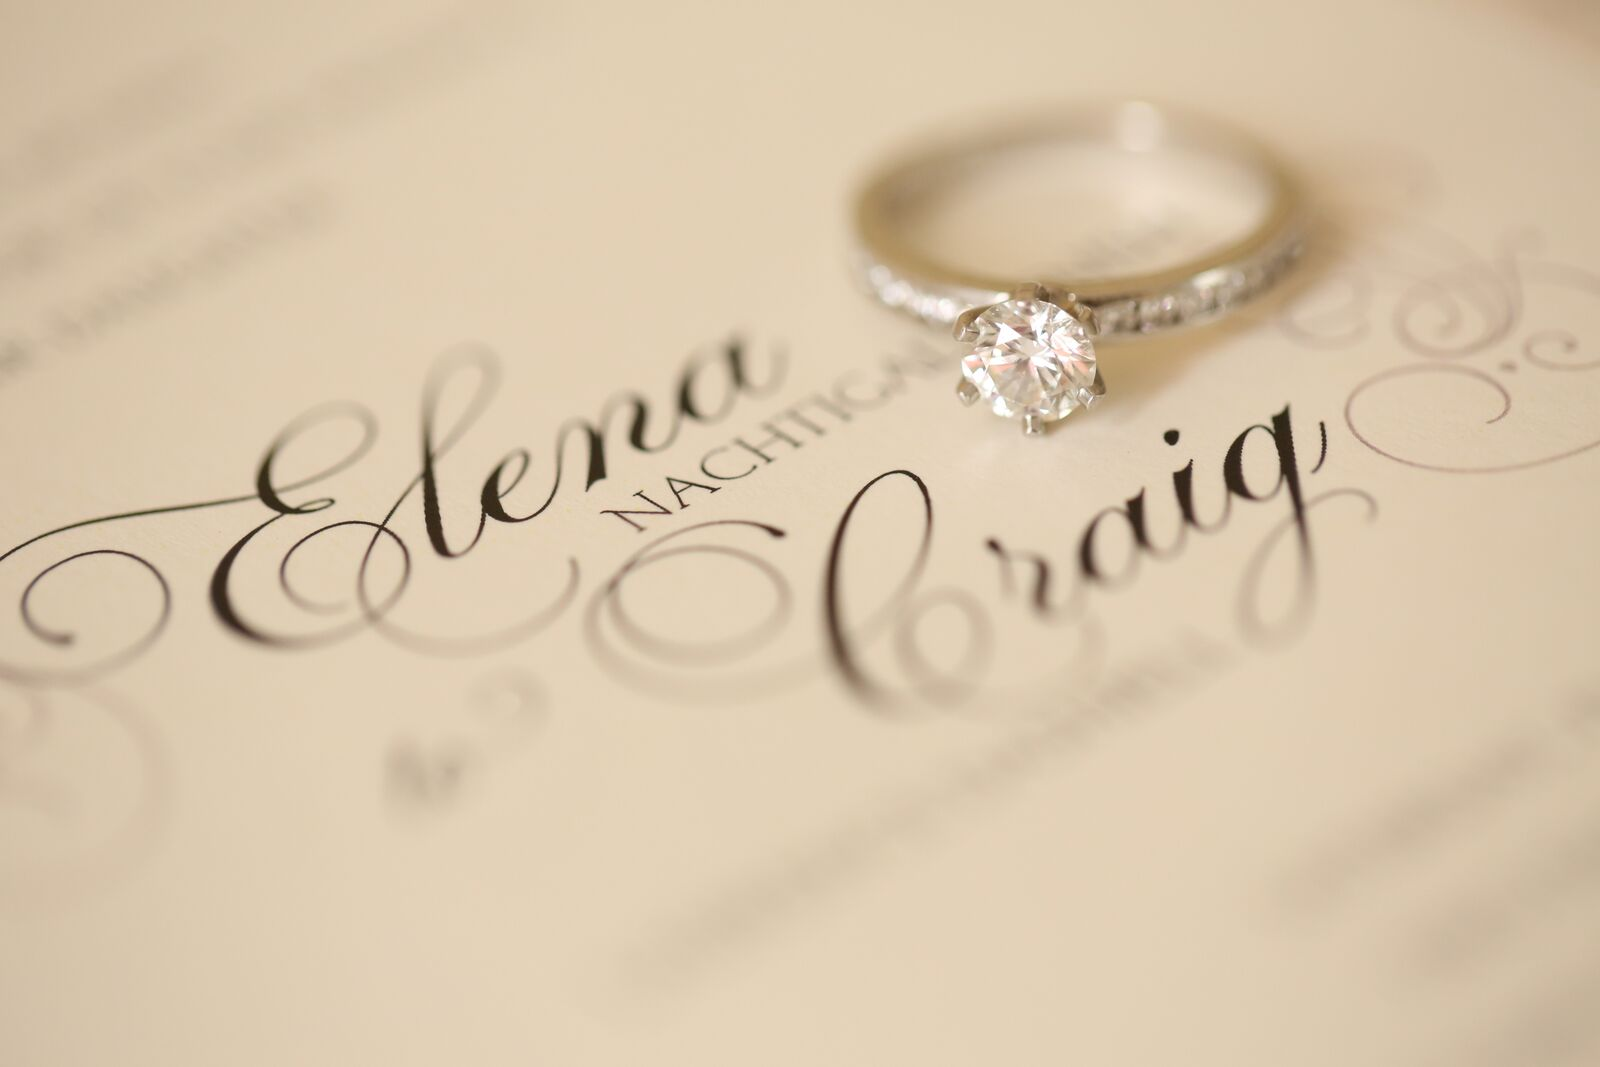 cream colored invitation with diamond solitaire engagement ring